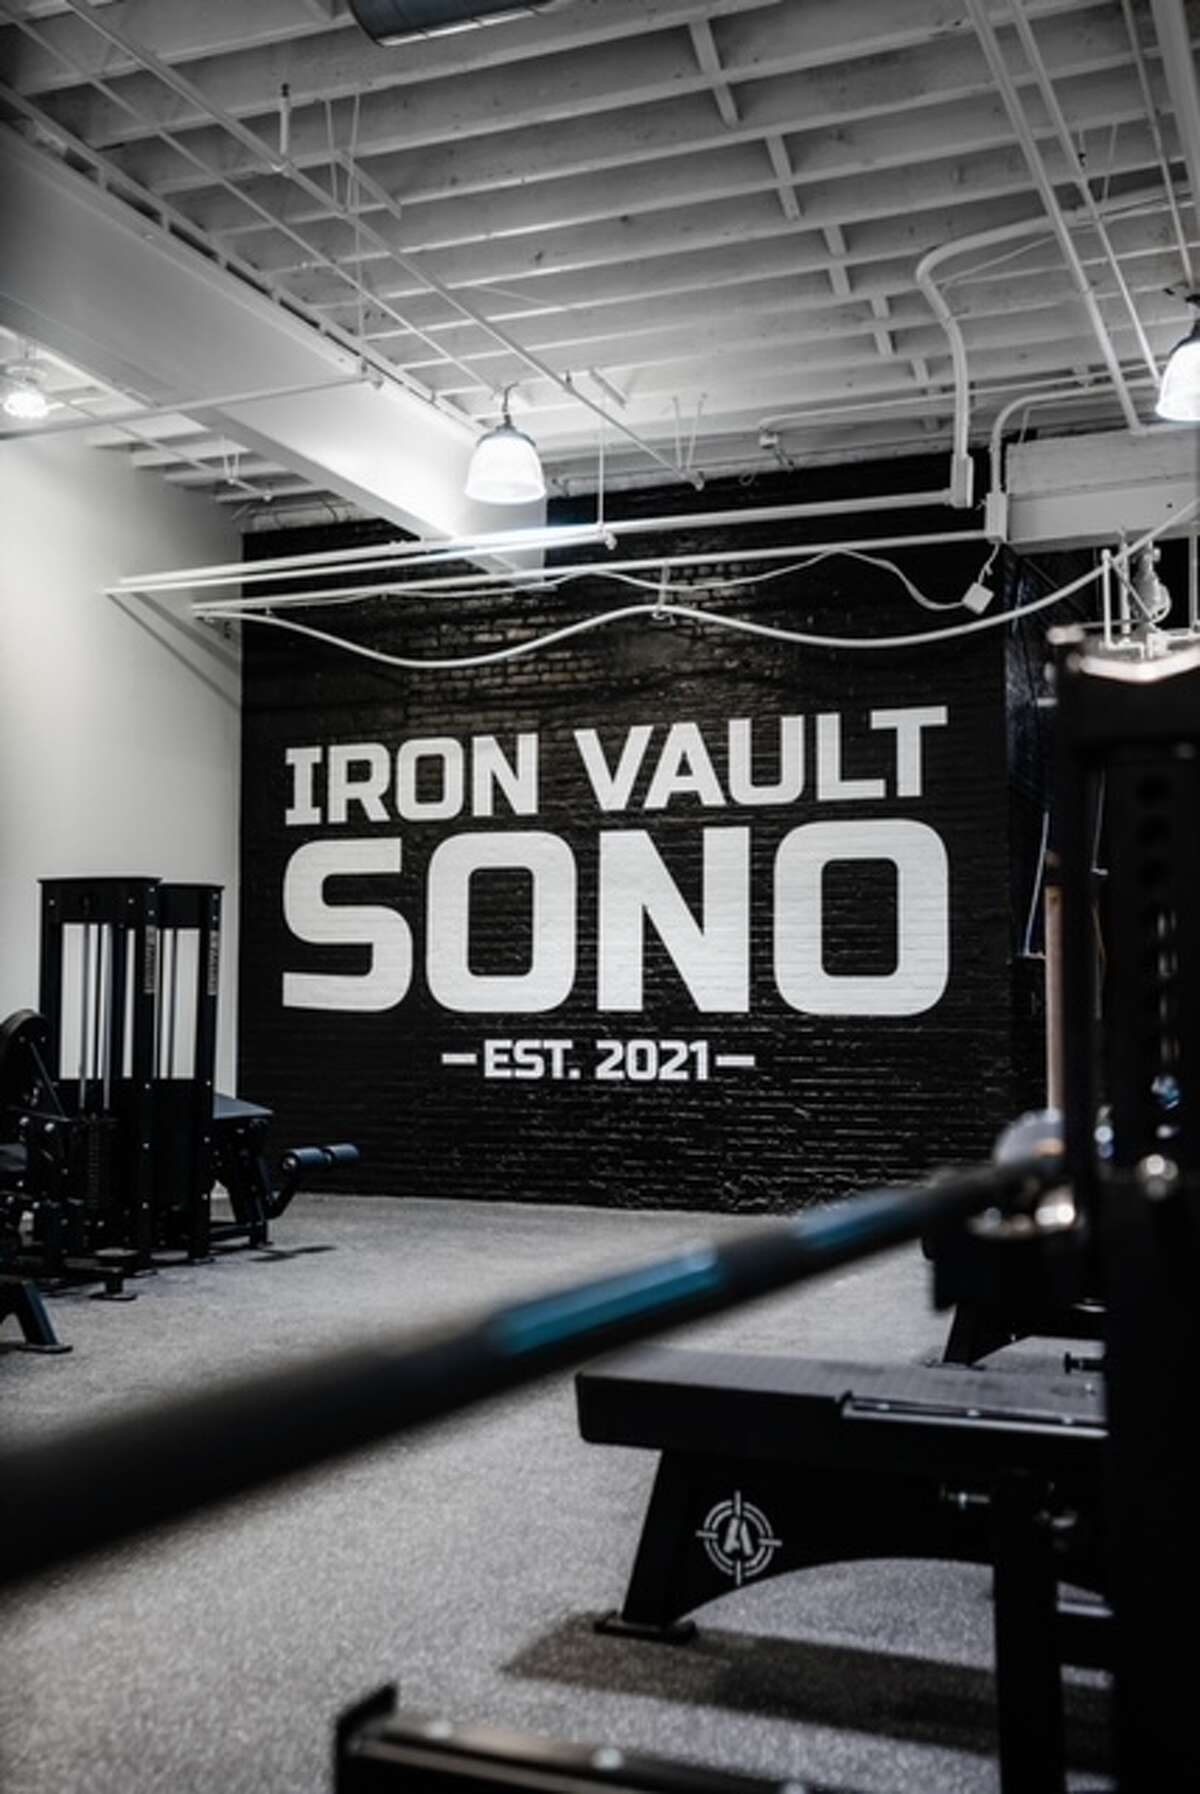 Scarsdale, N.Y.-based gym Iron Vault is set to open its first Connecticut location on 6 Day Street in South Norwalk, Conn. in mid-July 2021.